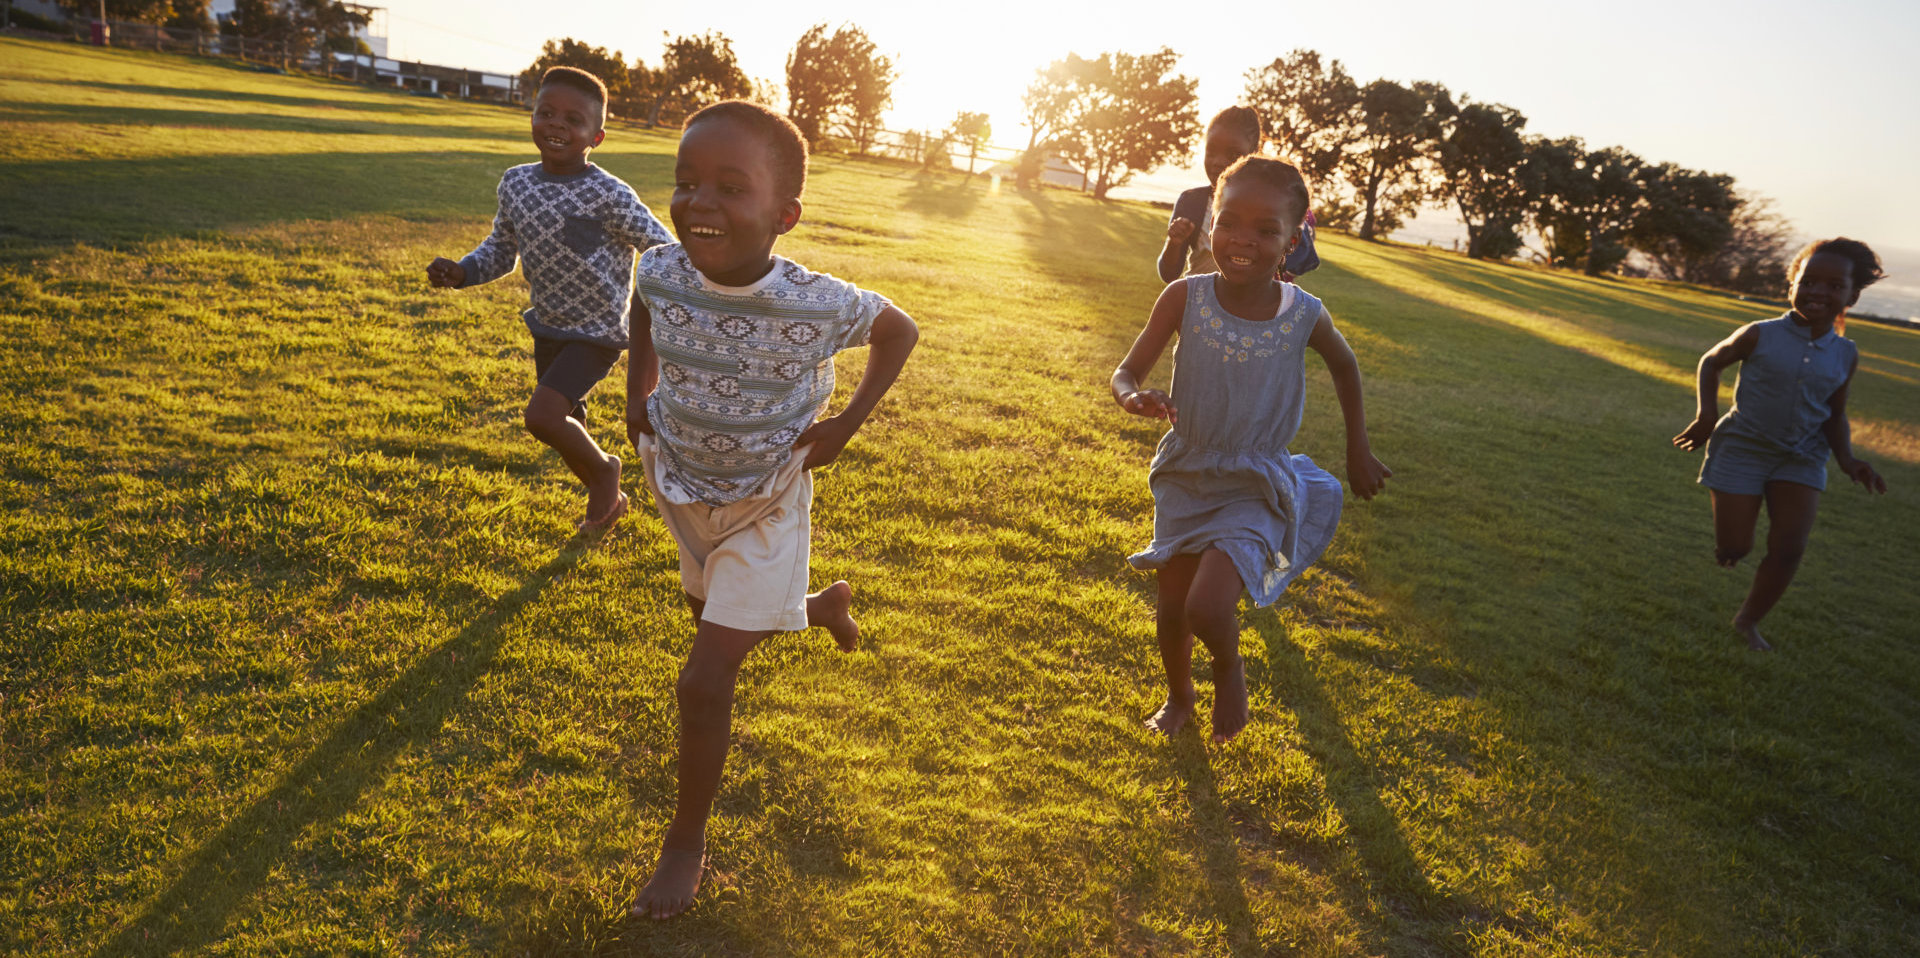 group of children playing under the sunset